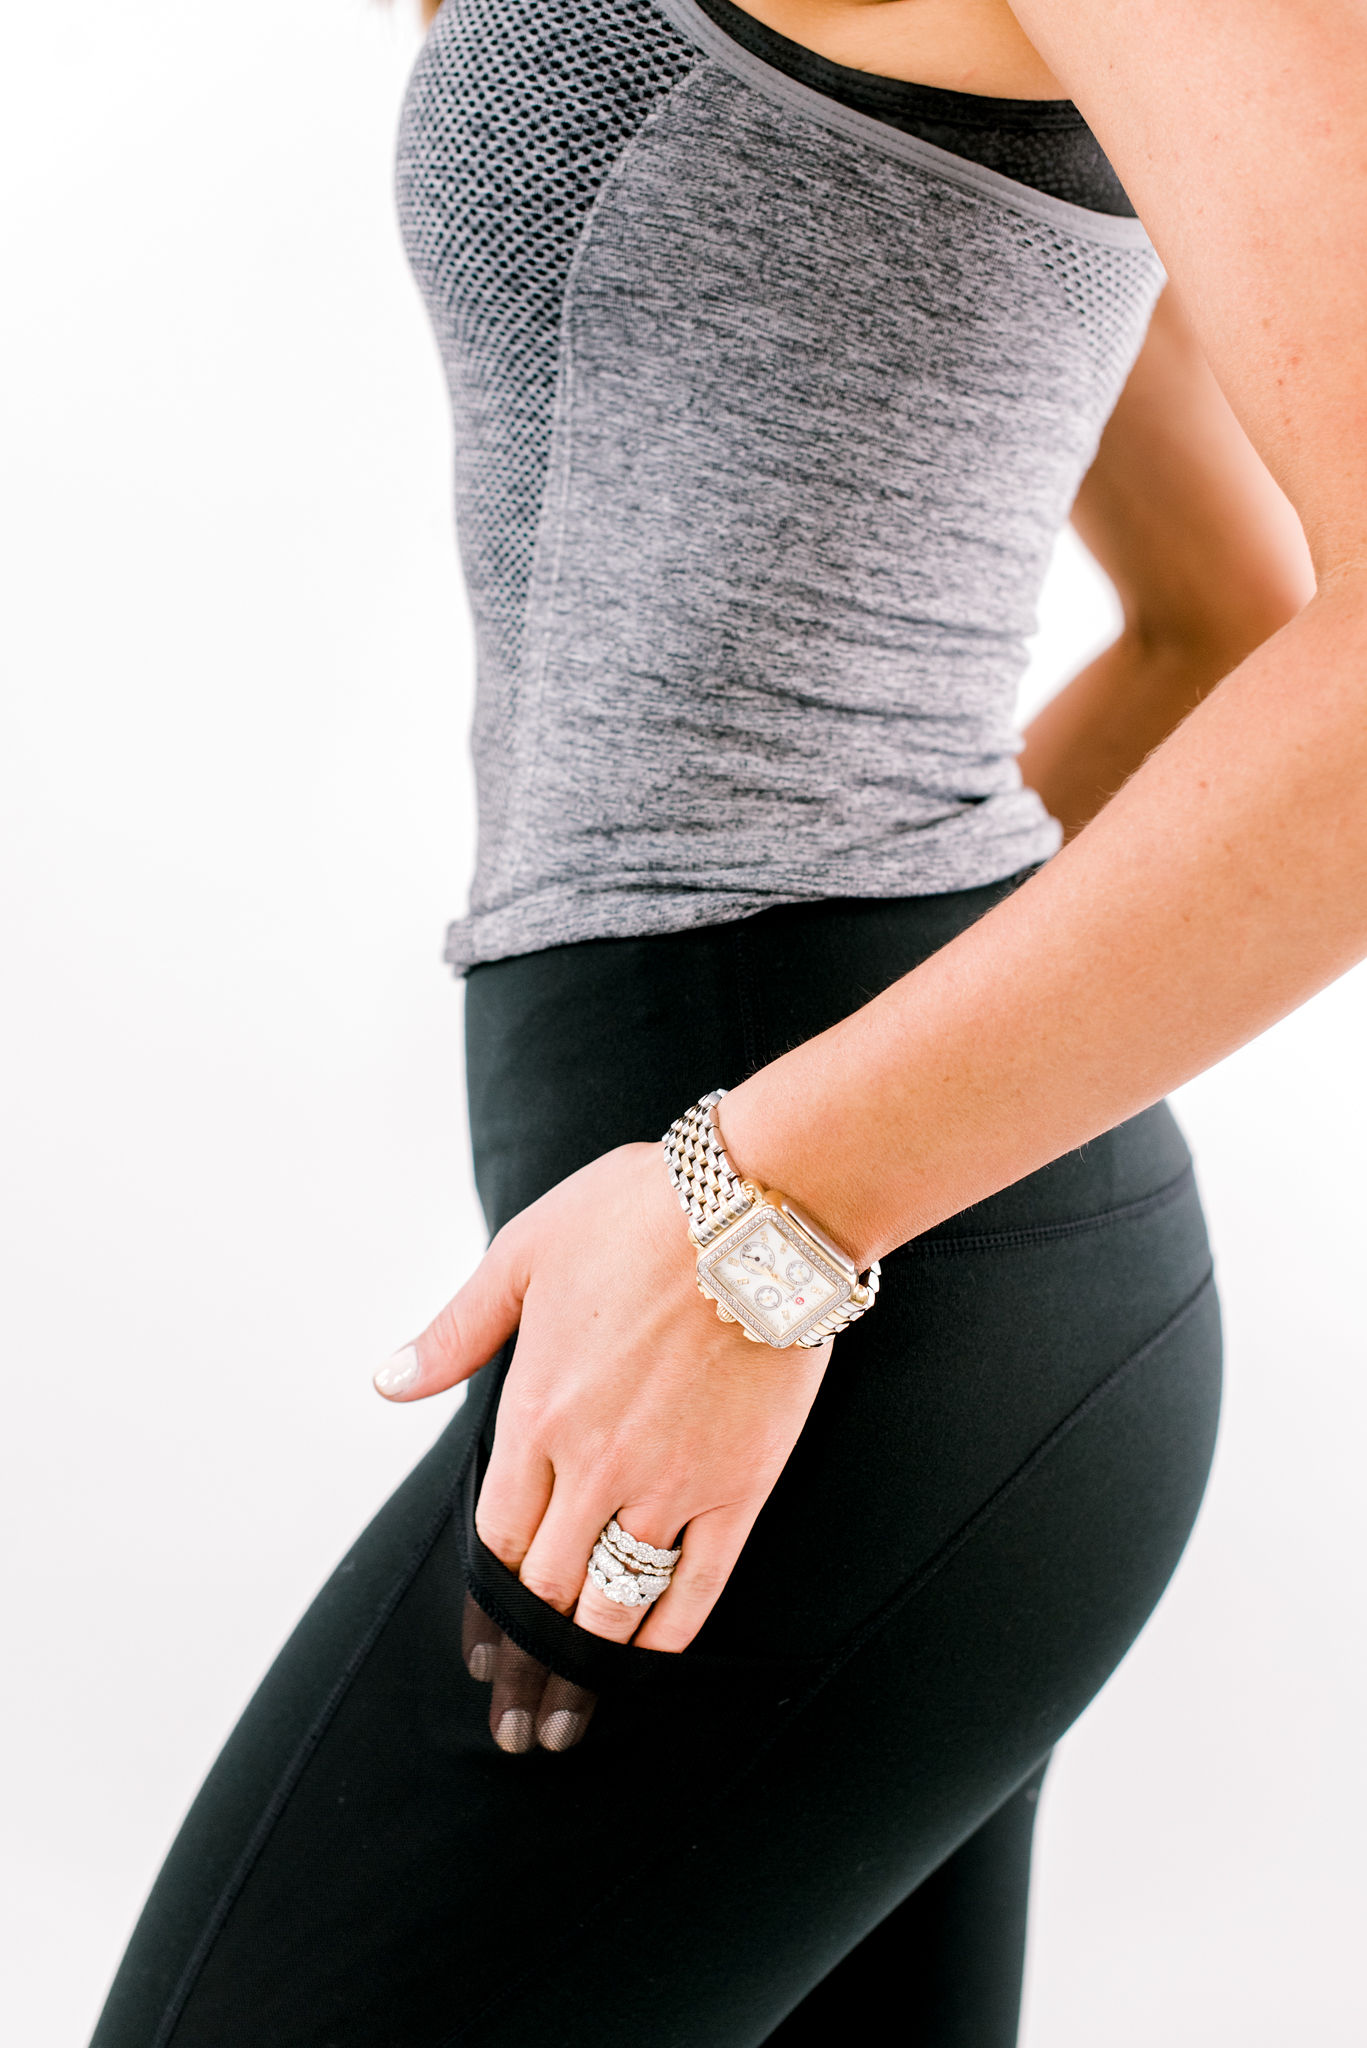 leggings with pockets, shop style your senses, best black leggings, slimming black leggings